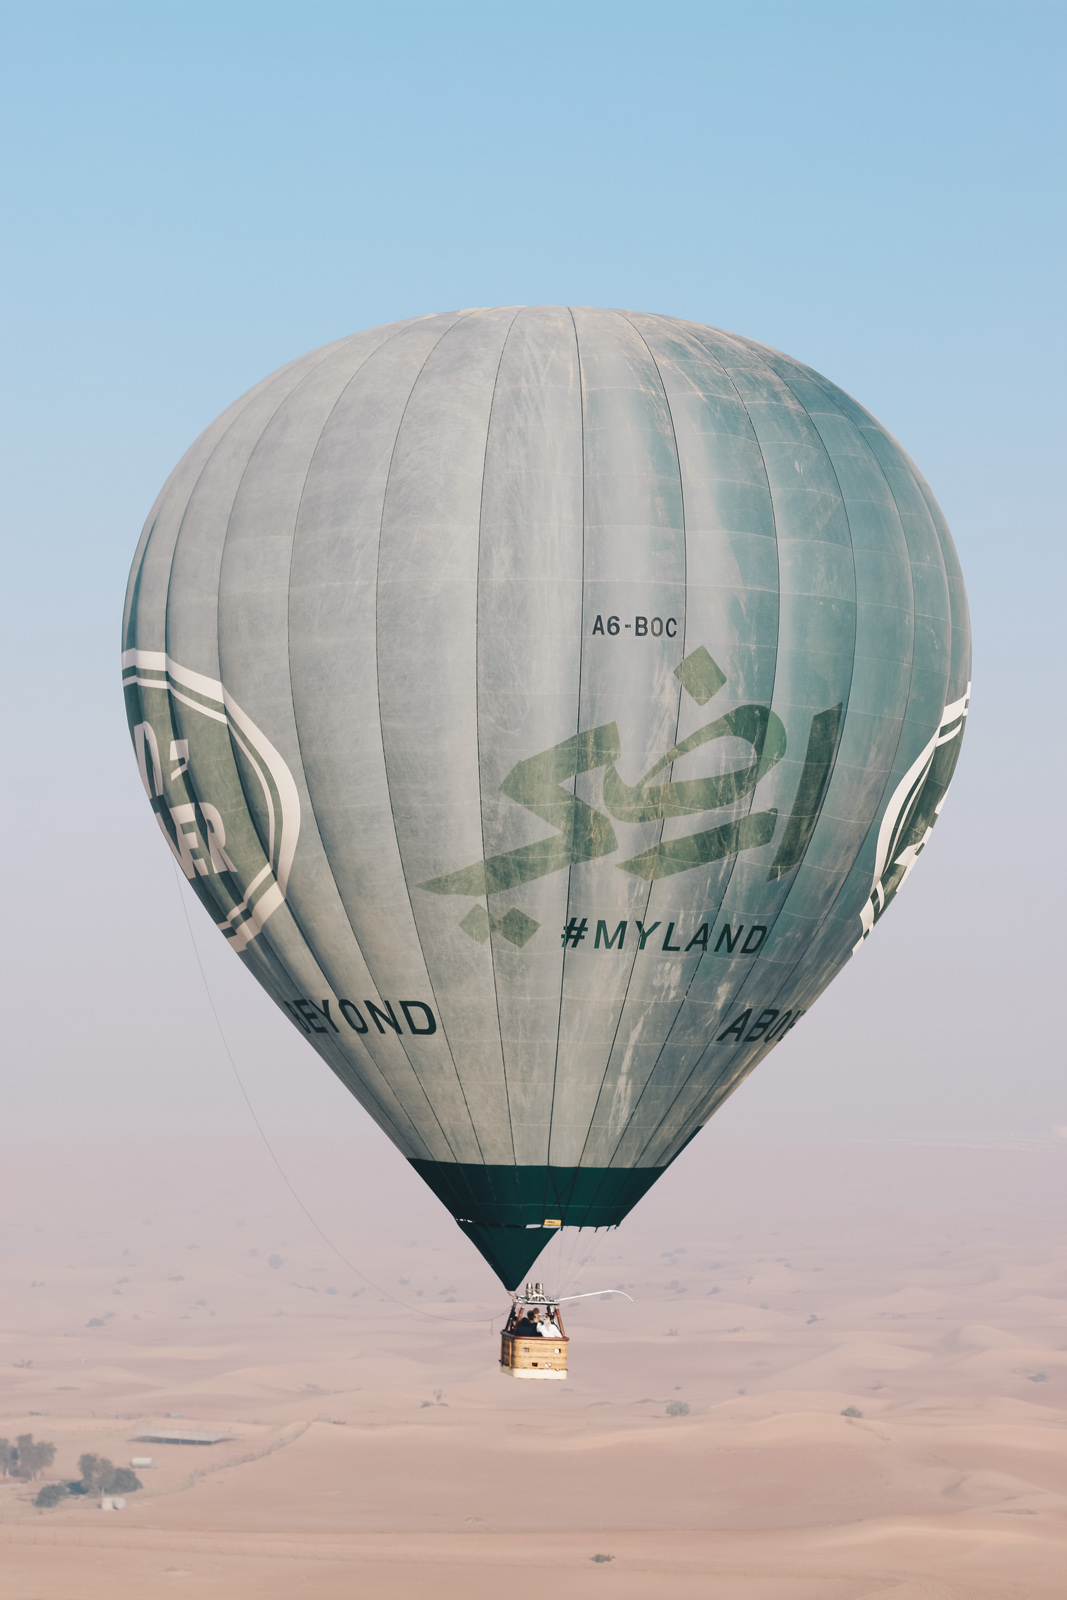 photo of hot air balloon in Dubai